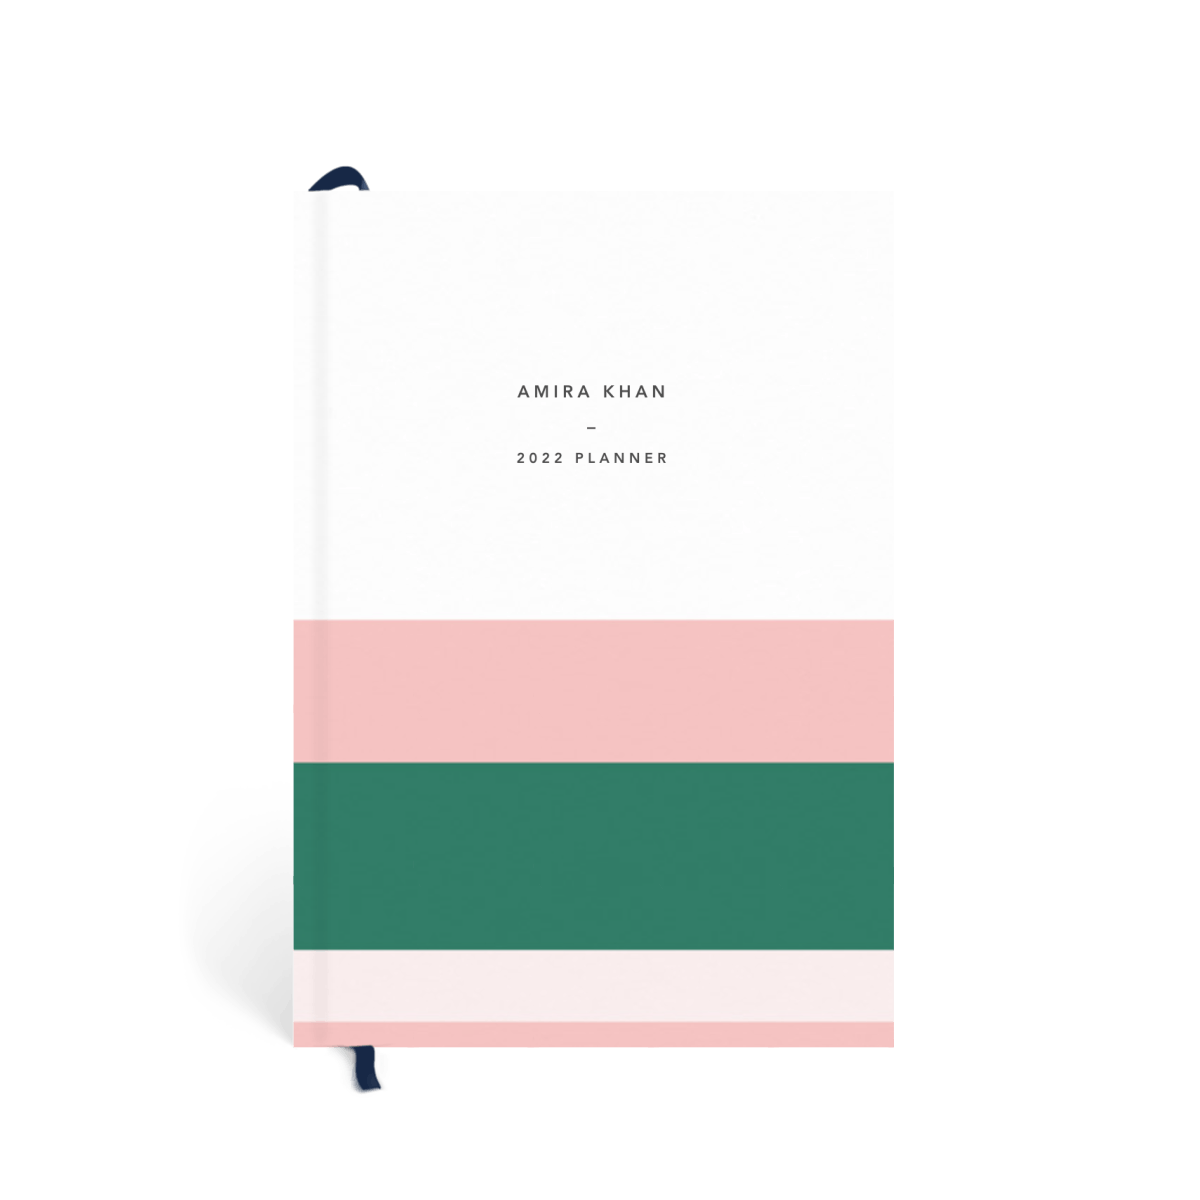 Https%3a%2f%2fwww.papier.com%2fproduct image%2f90152%2f36%2fstriped colourblock pink green 22548 front 1569936124.png?ixlib=rb 1.1